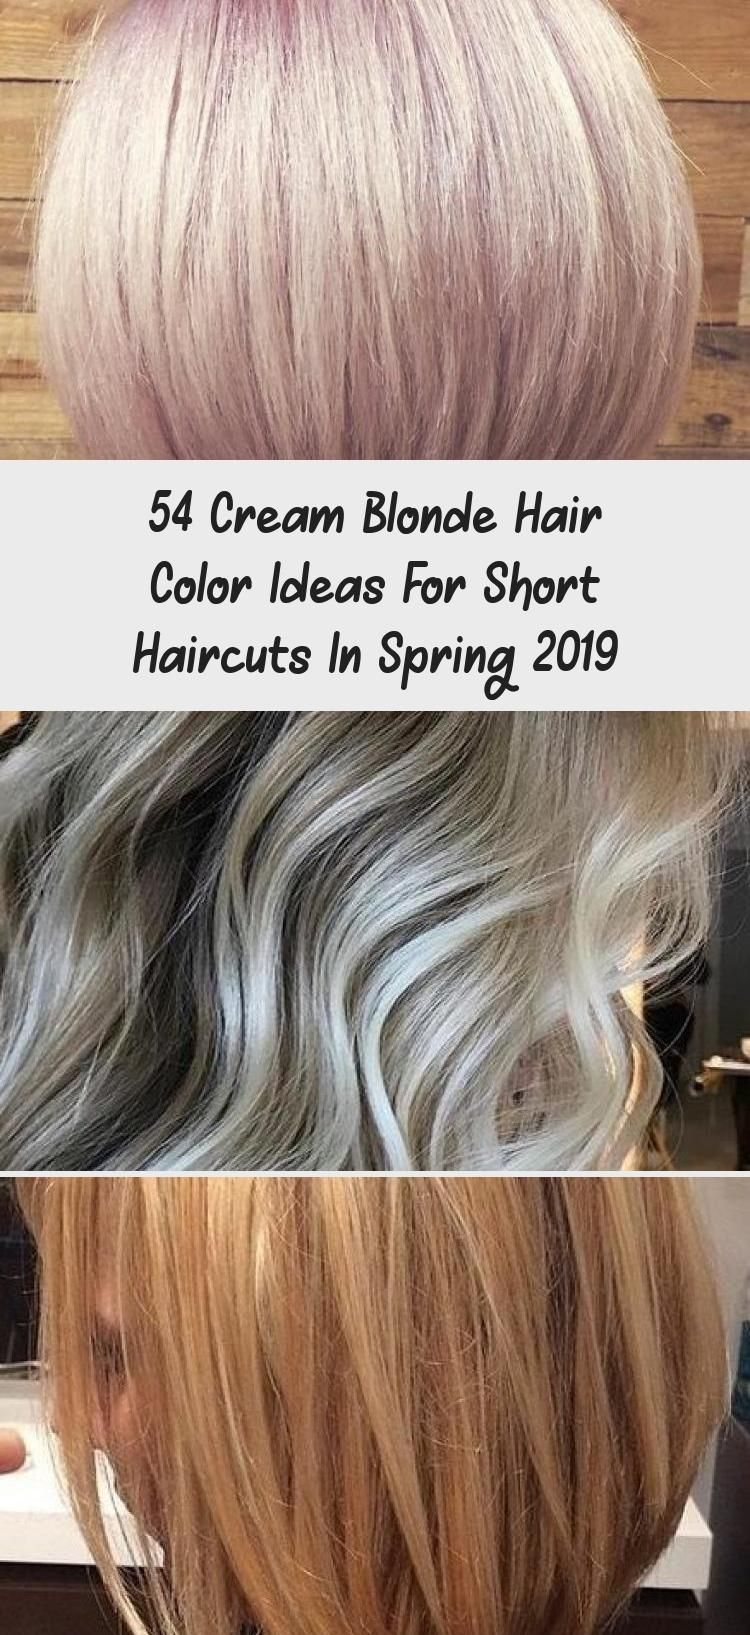 54 Cream Blonde Hair Color Ideas For Short Haircuts In Spring 2019 #darkblondehair